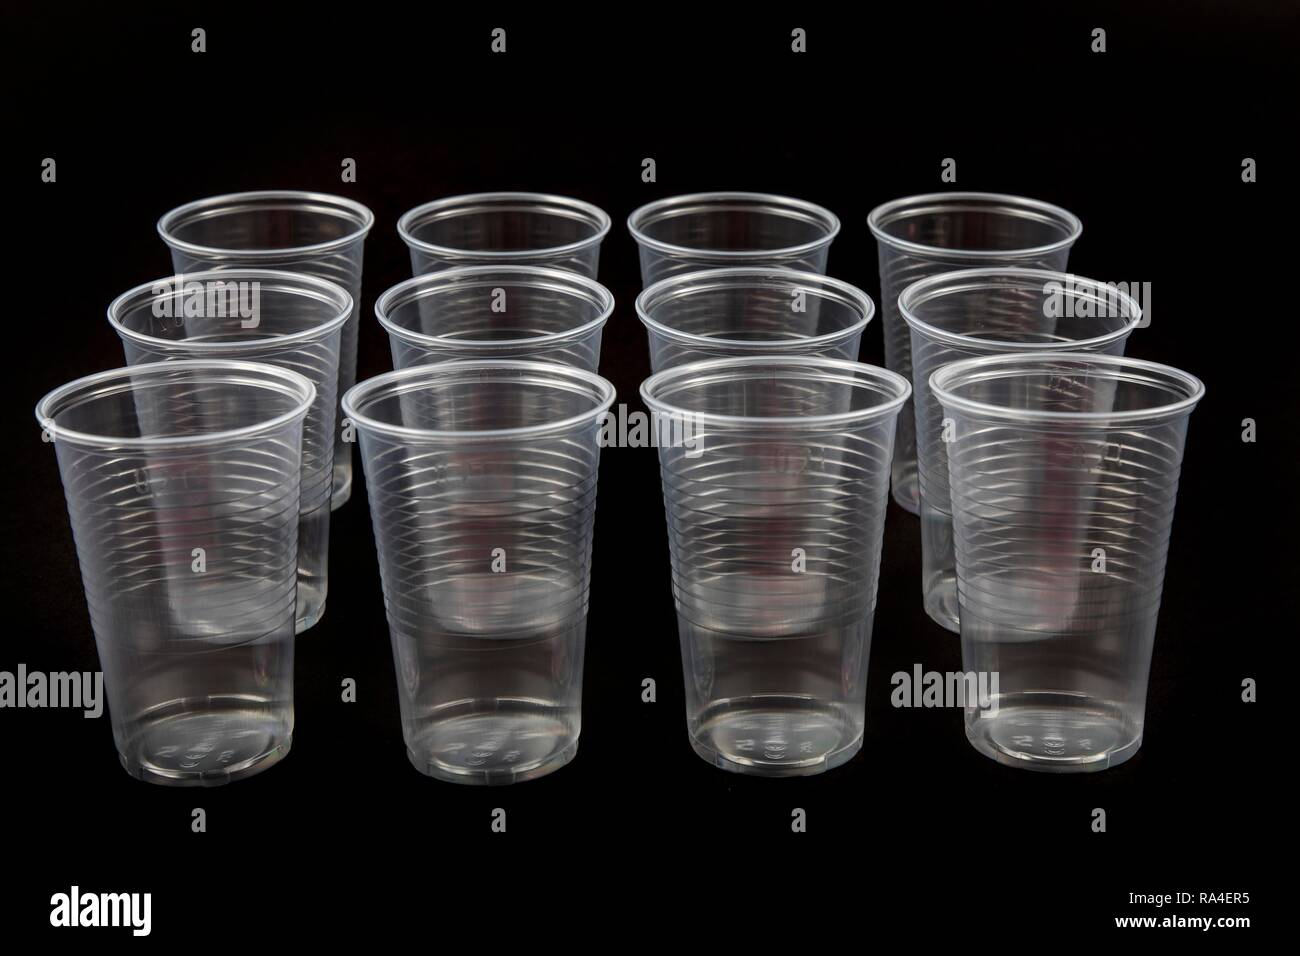 Disposable cups, plastic cups, transparent, 0, 2 litres, drinking cups, disposable cups, plastic waste - Stock Image